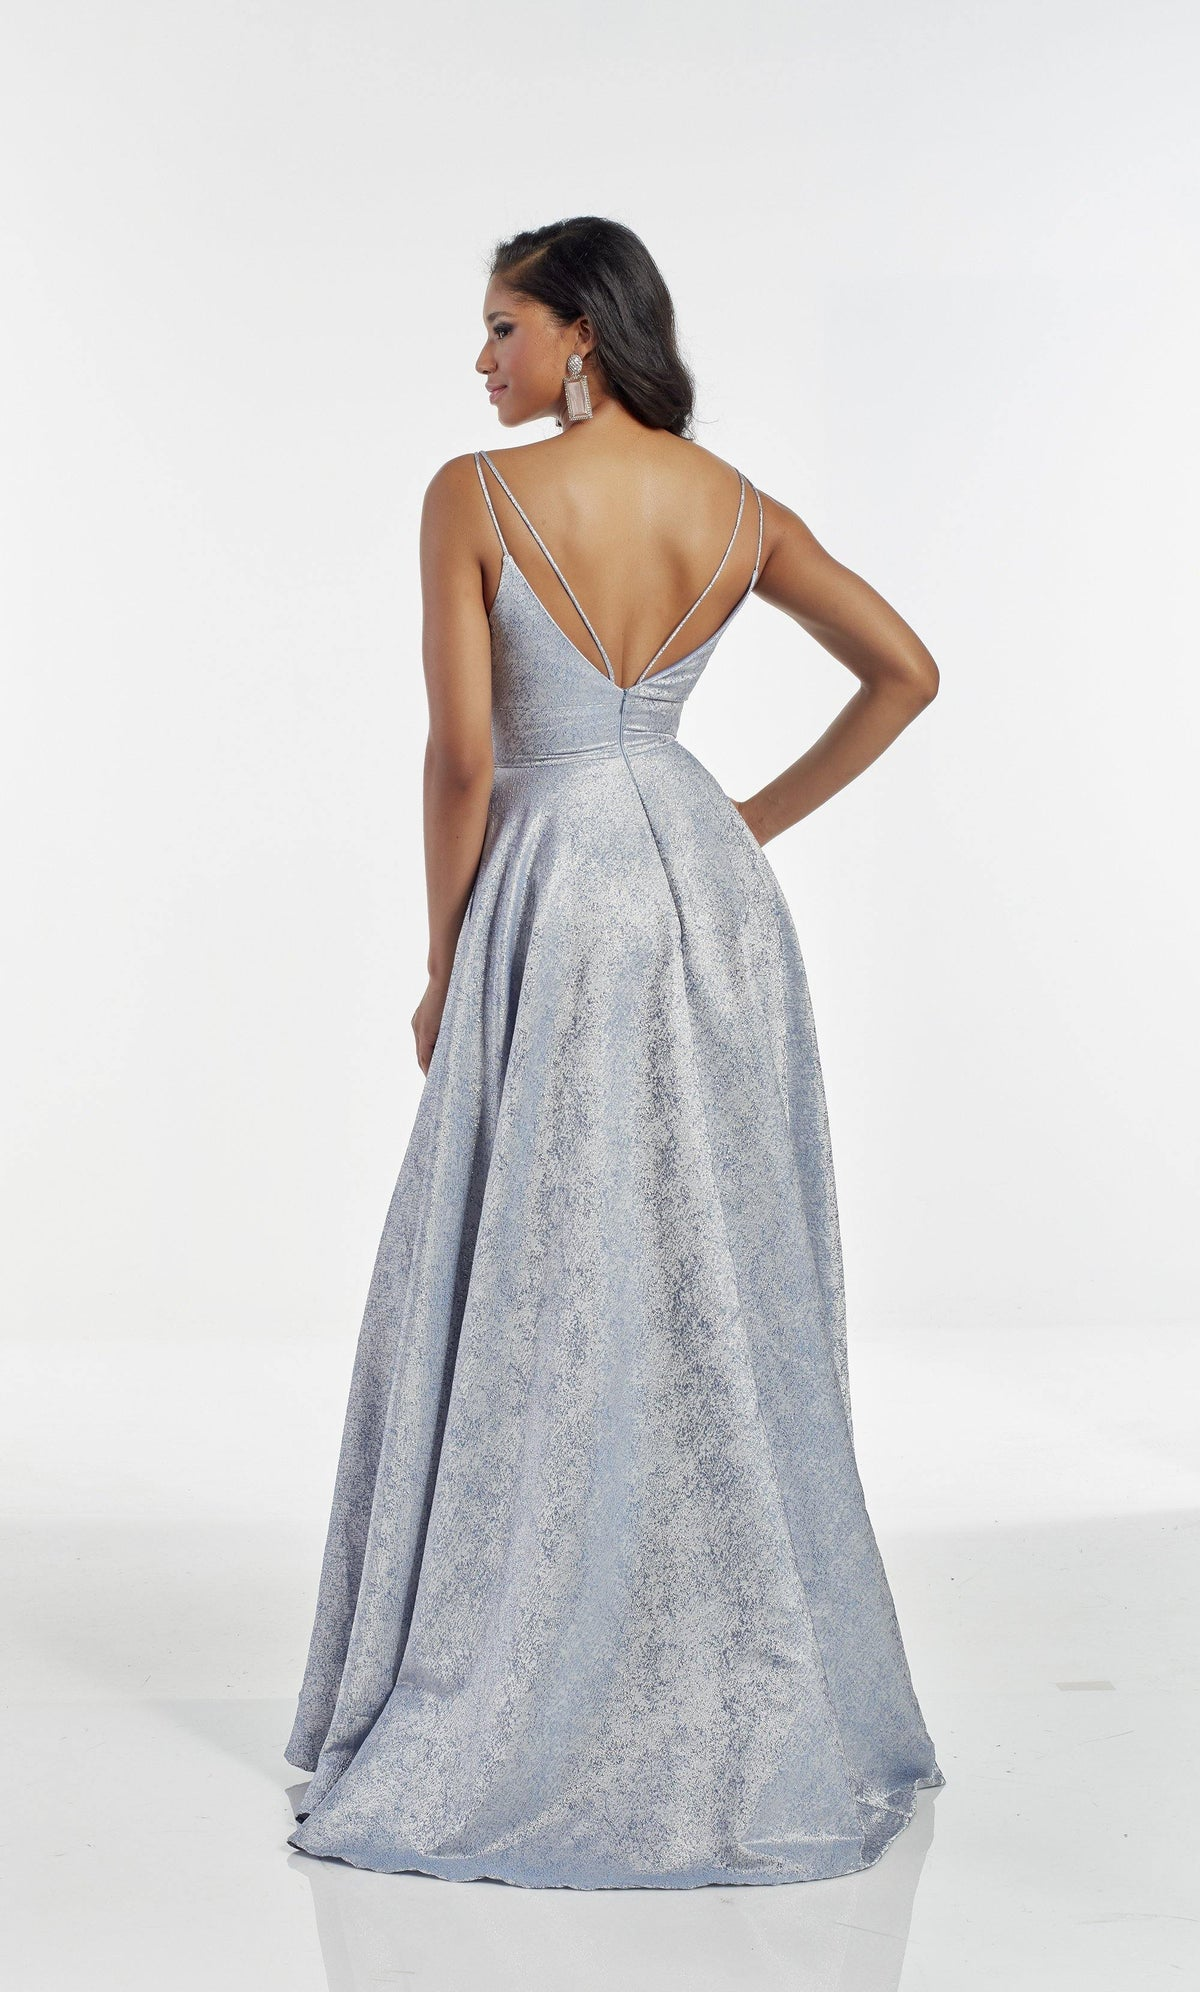 Light Blue metallic jacquard formal dress with a V shaped back and train